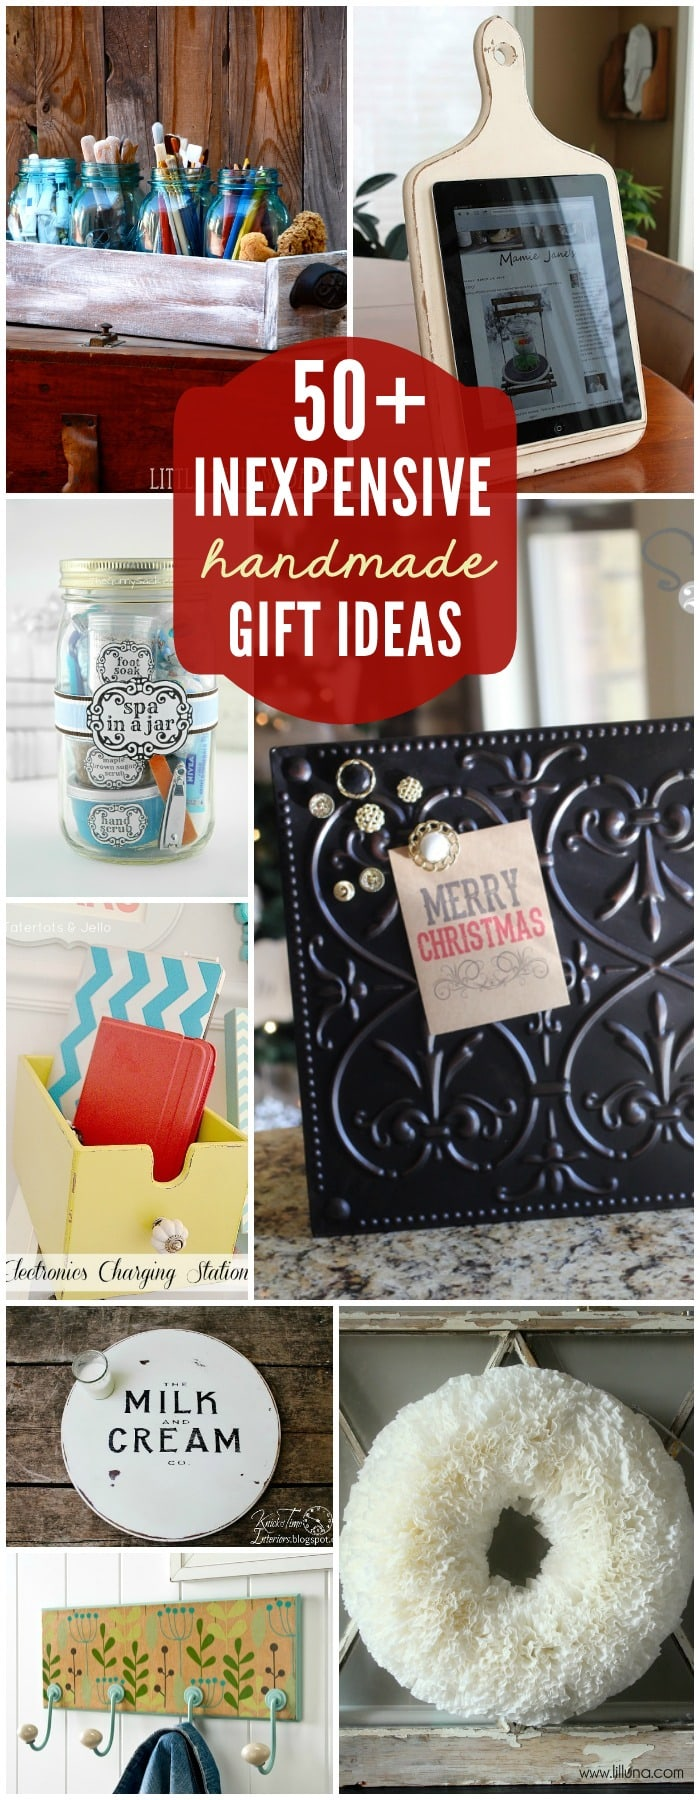 50+ Inexpensive DIY Gift Ideas - perfect for Christmas! { lilluna.com } #giftideas